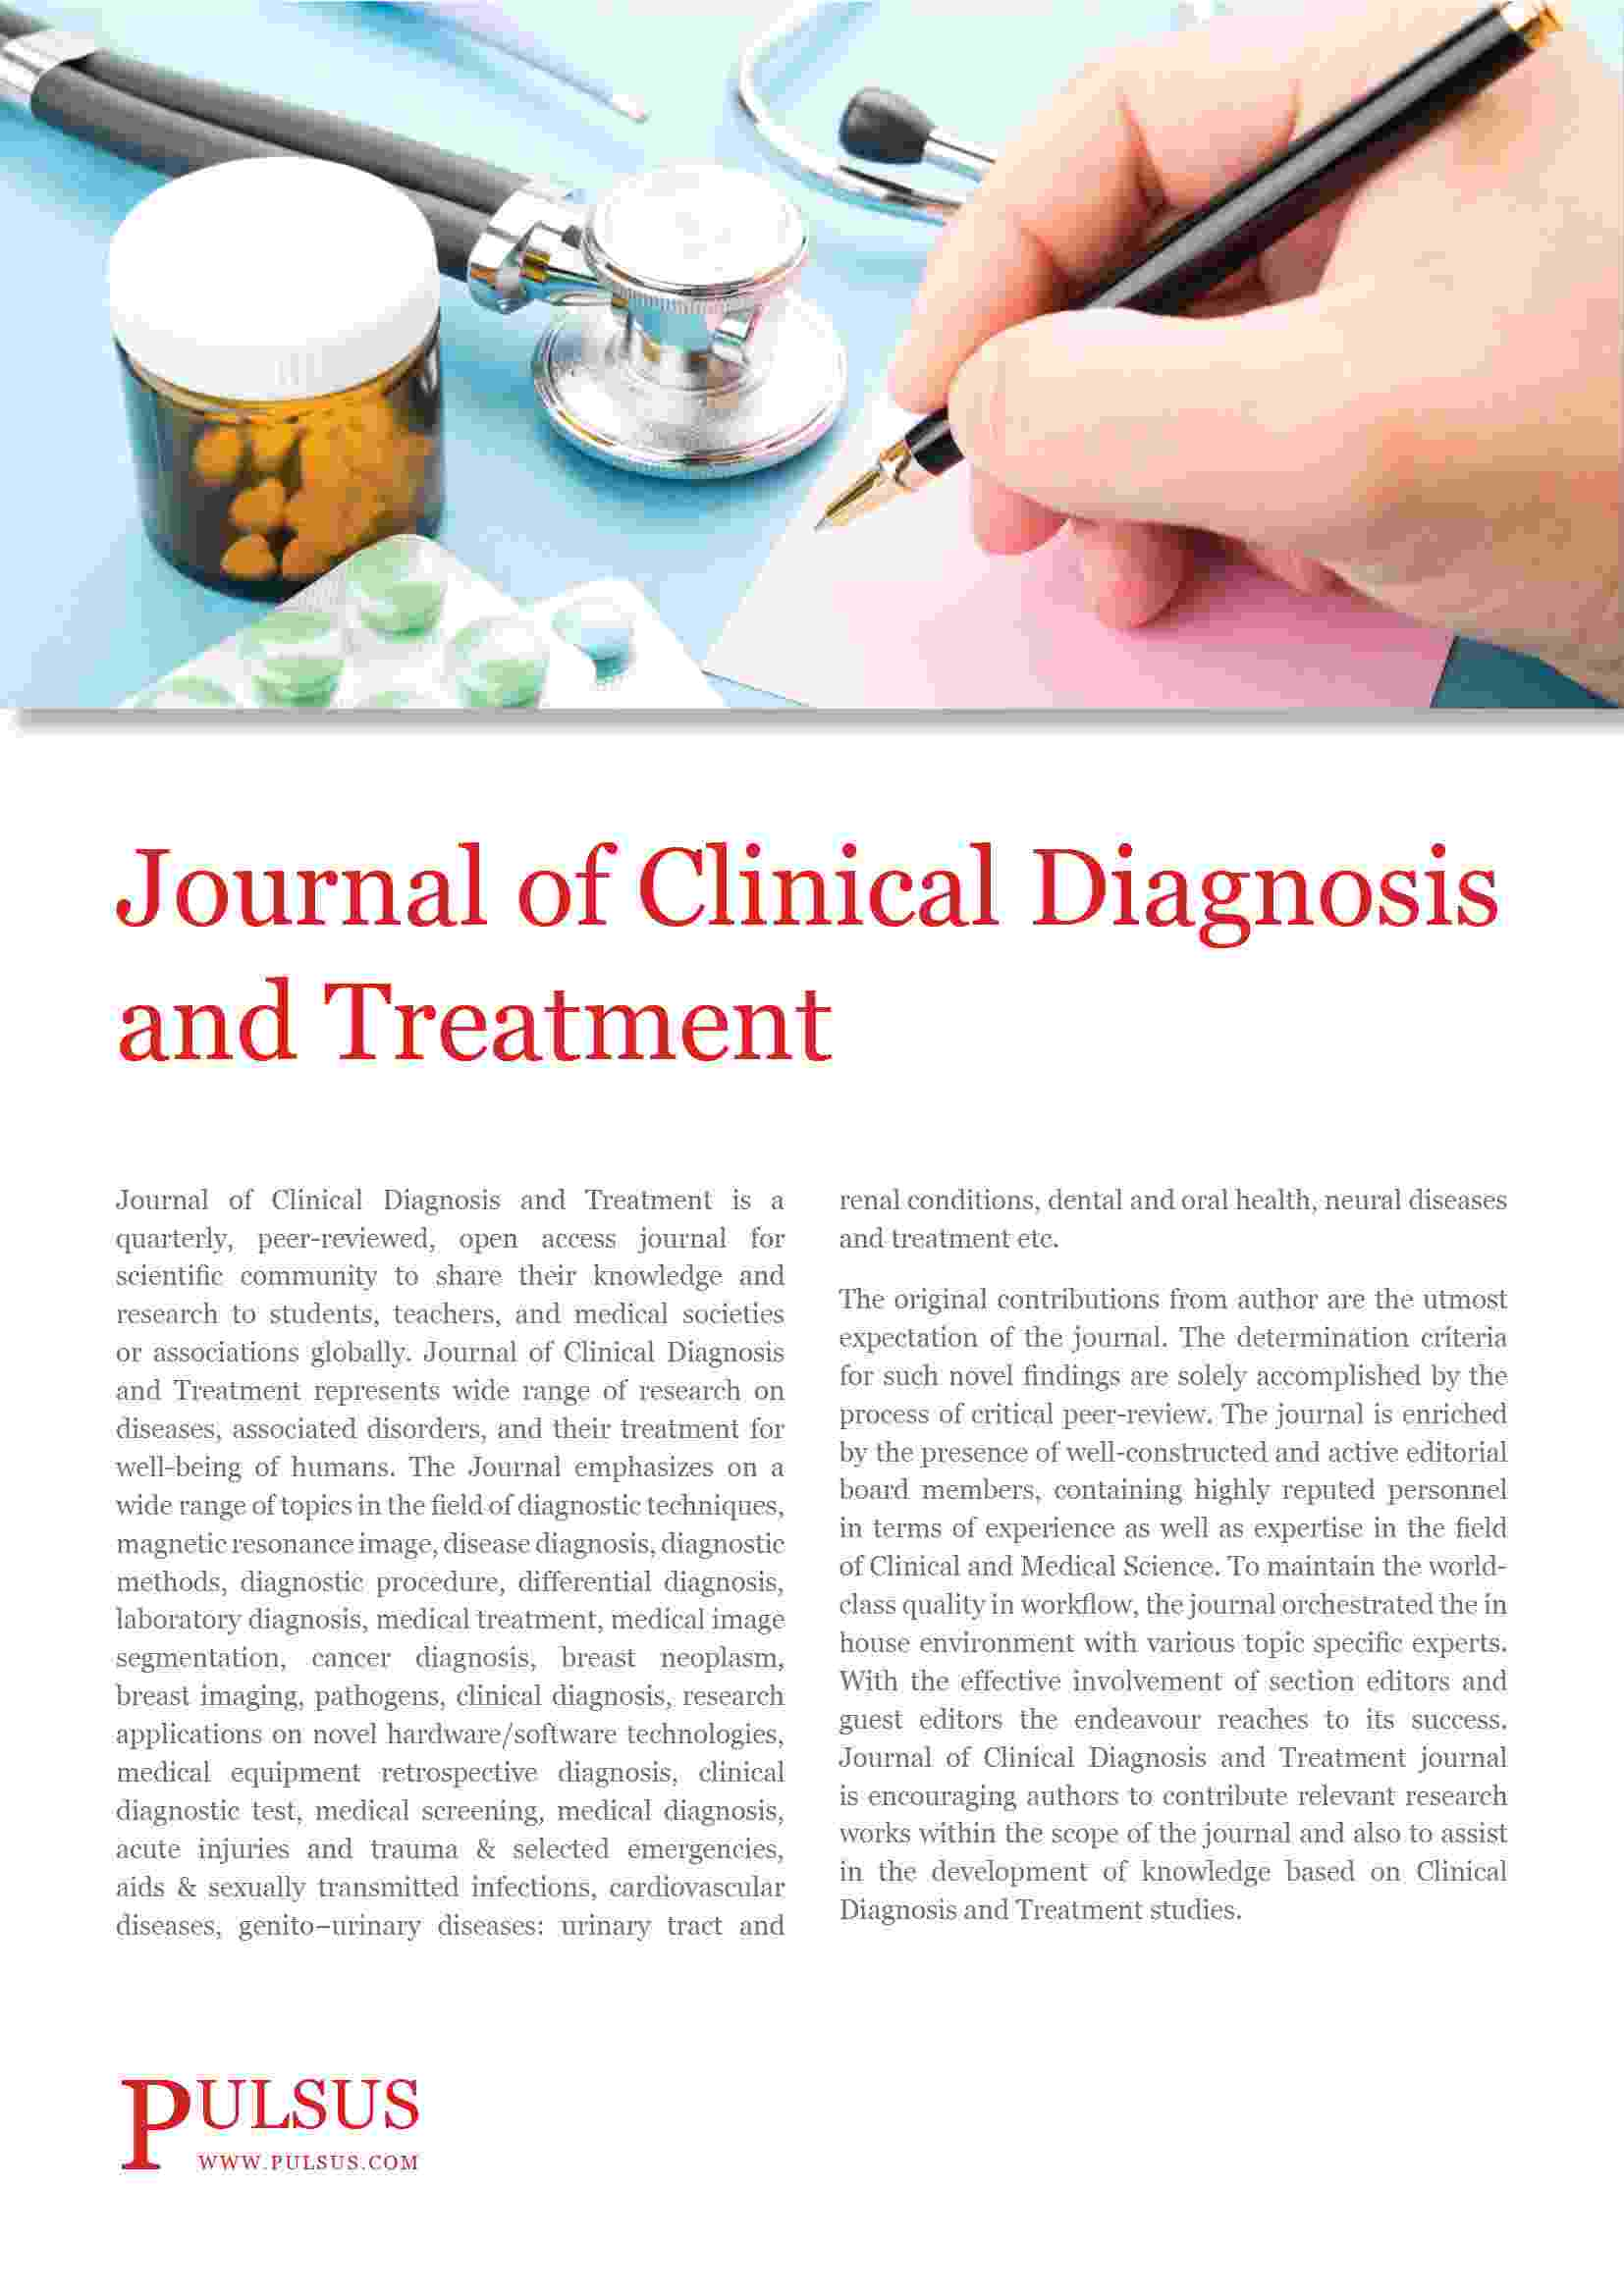 Chronic Diseases 2020 - Journal Of Clinical Diagnosis and Treatment